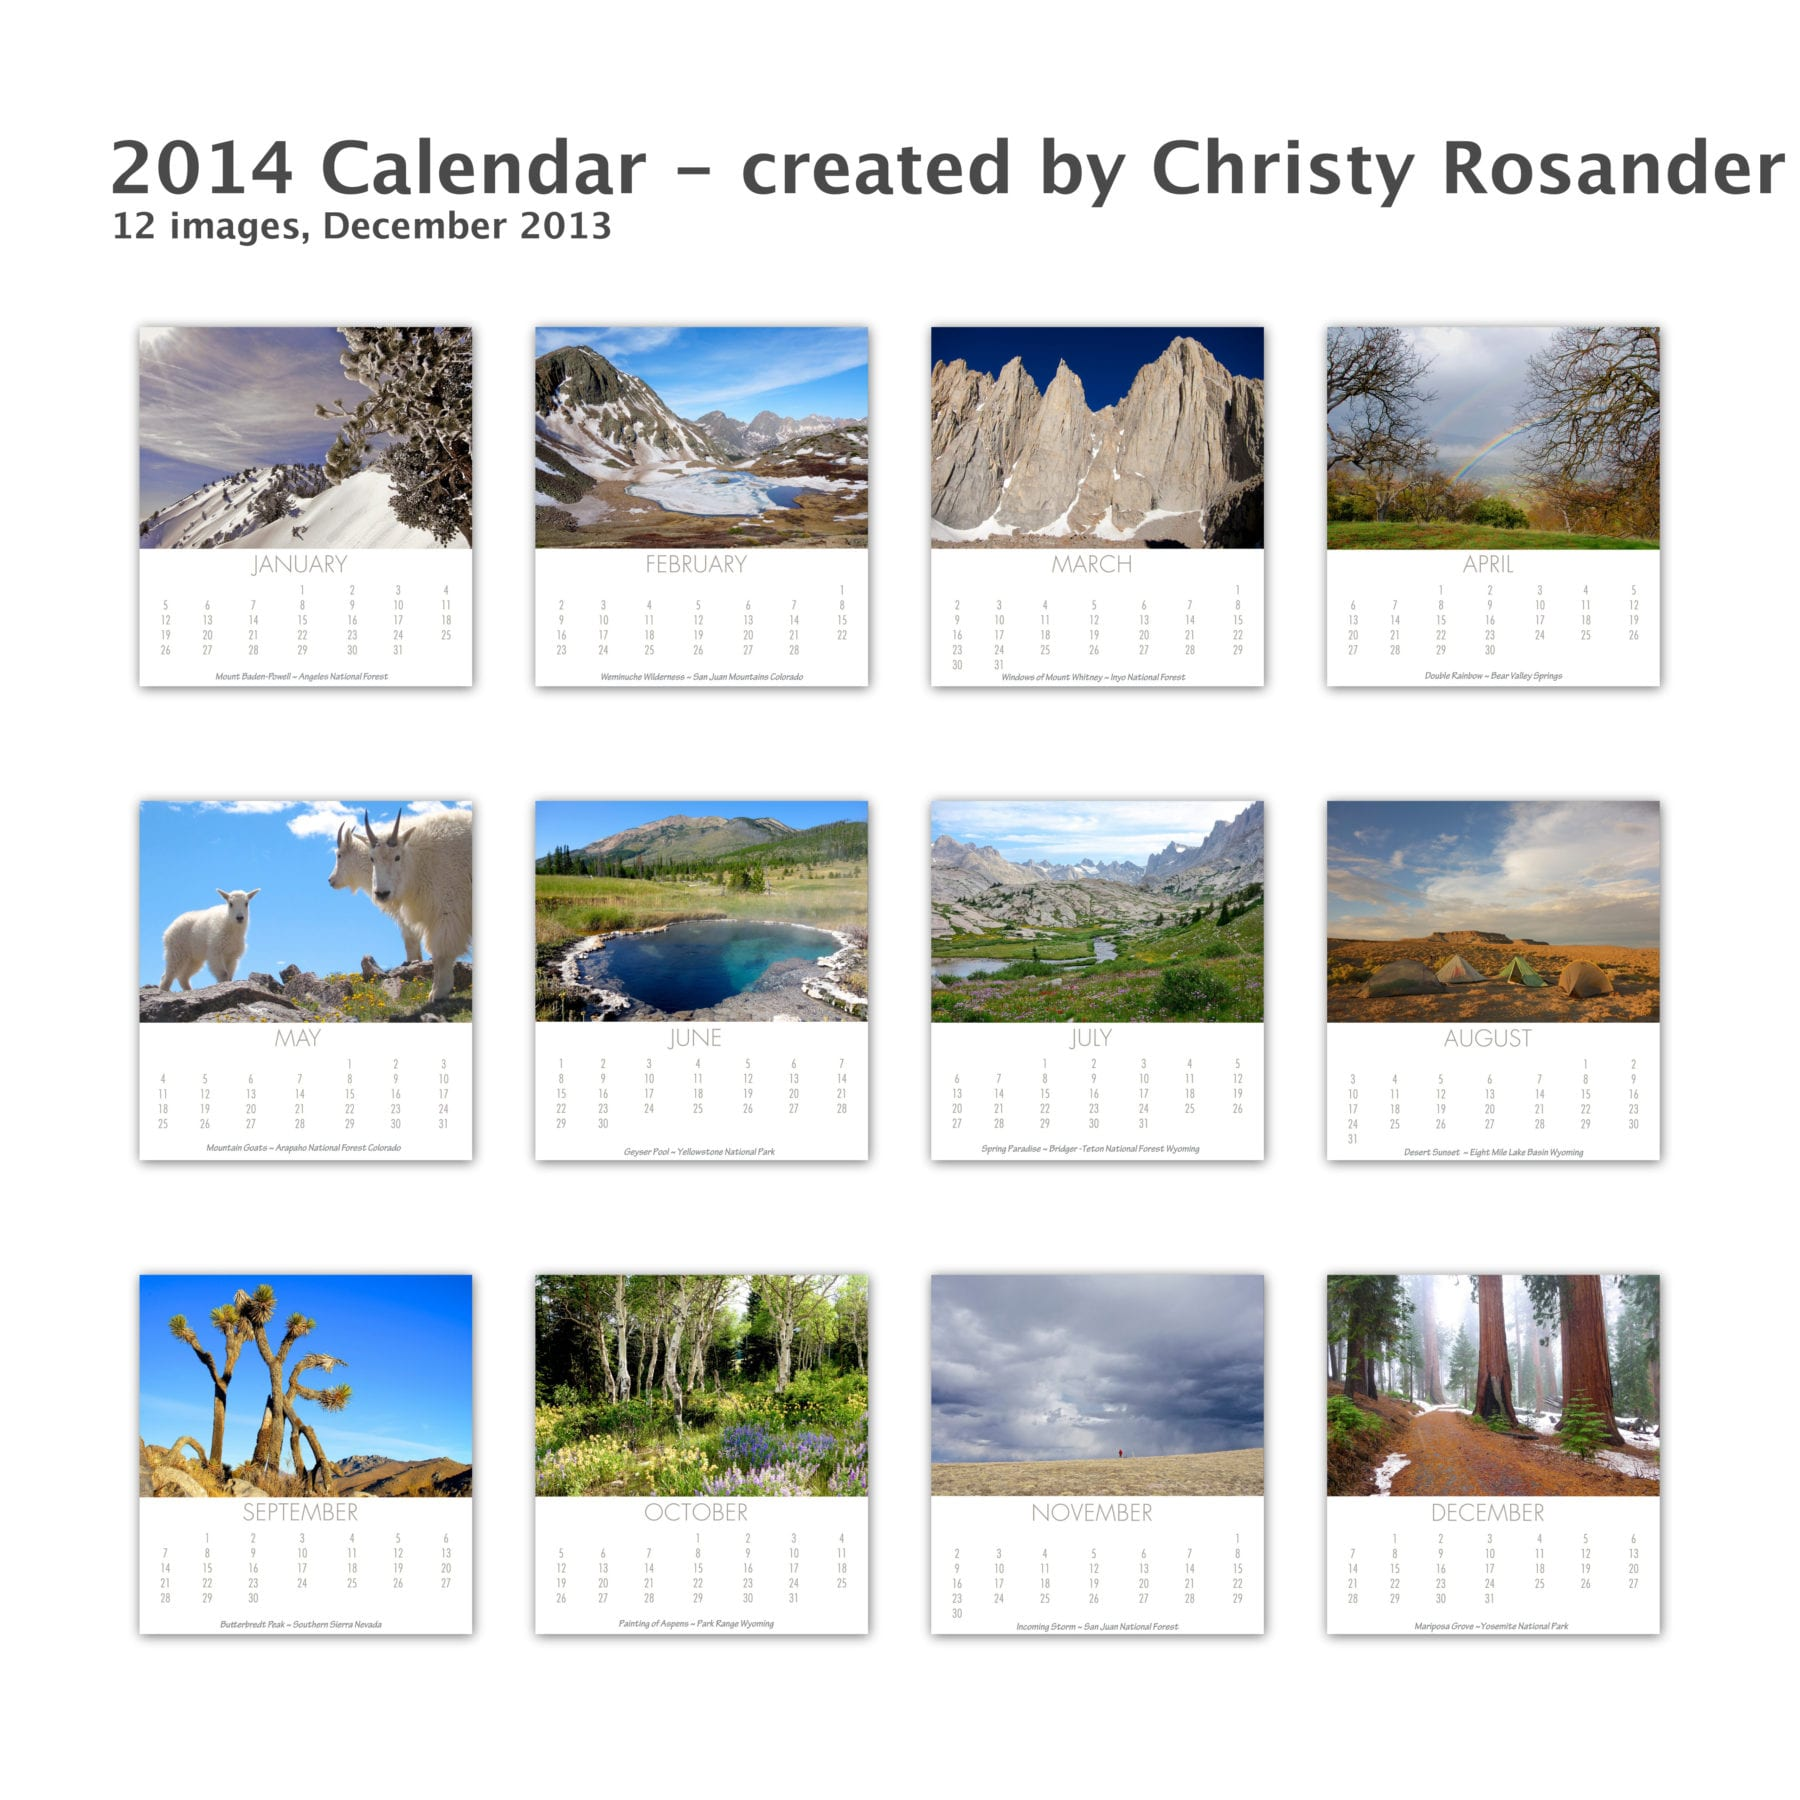 2014 Calendar - created by Christy Rosander